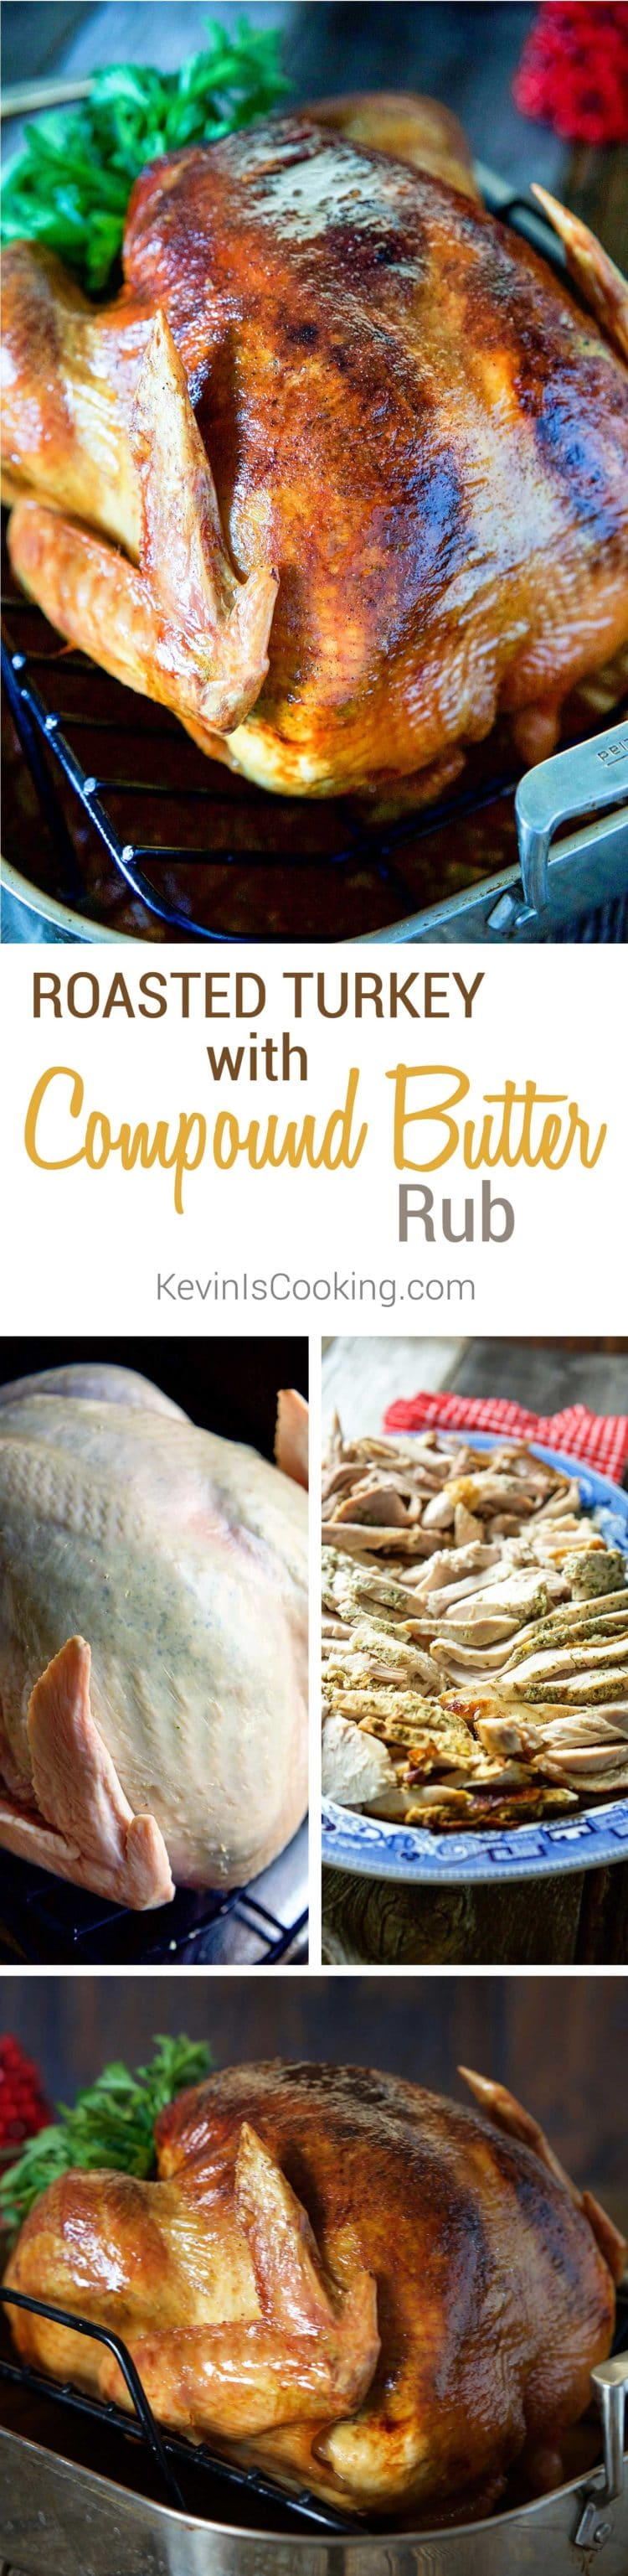 Roasted Turkey with Compound Butter - I like to make a compound butter with mixed, chopped herbs to keep that meat juicy, tender and packed with flavor!